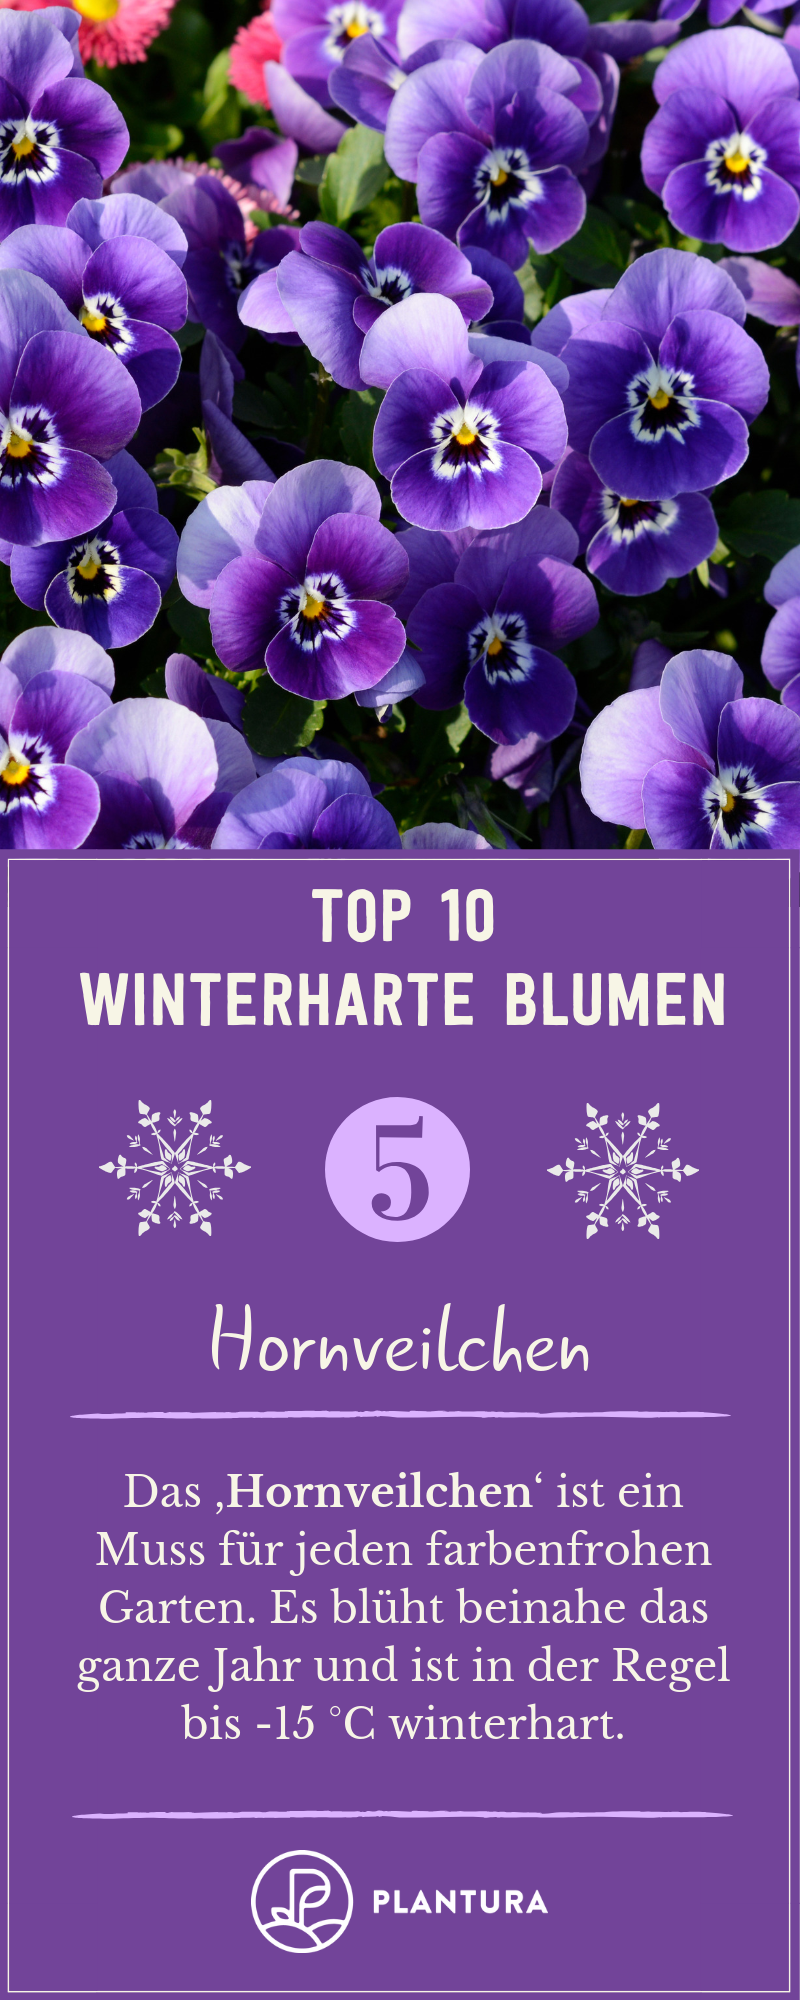 50 Perennials Winterharte Blumen Diese Robusten Sorten Trotzen Dem Winter Top 10 Winterhart Winter Flowers Garden Winter Flowers Beautiful Flowers Garden